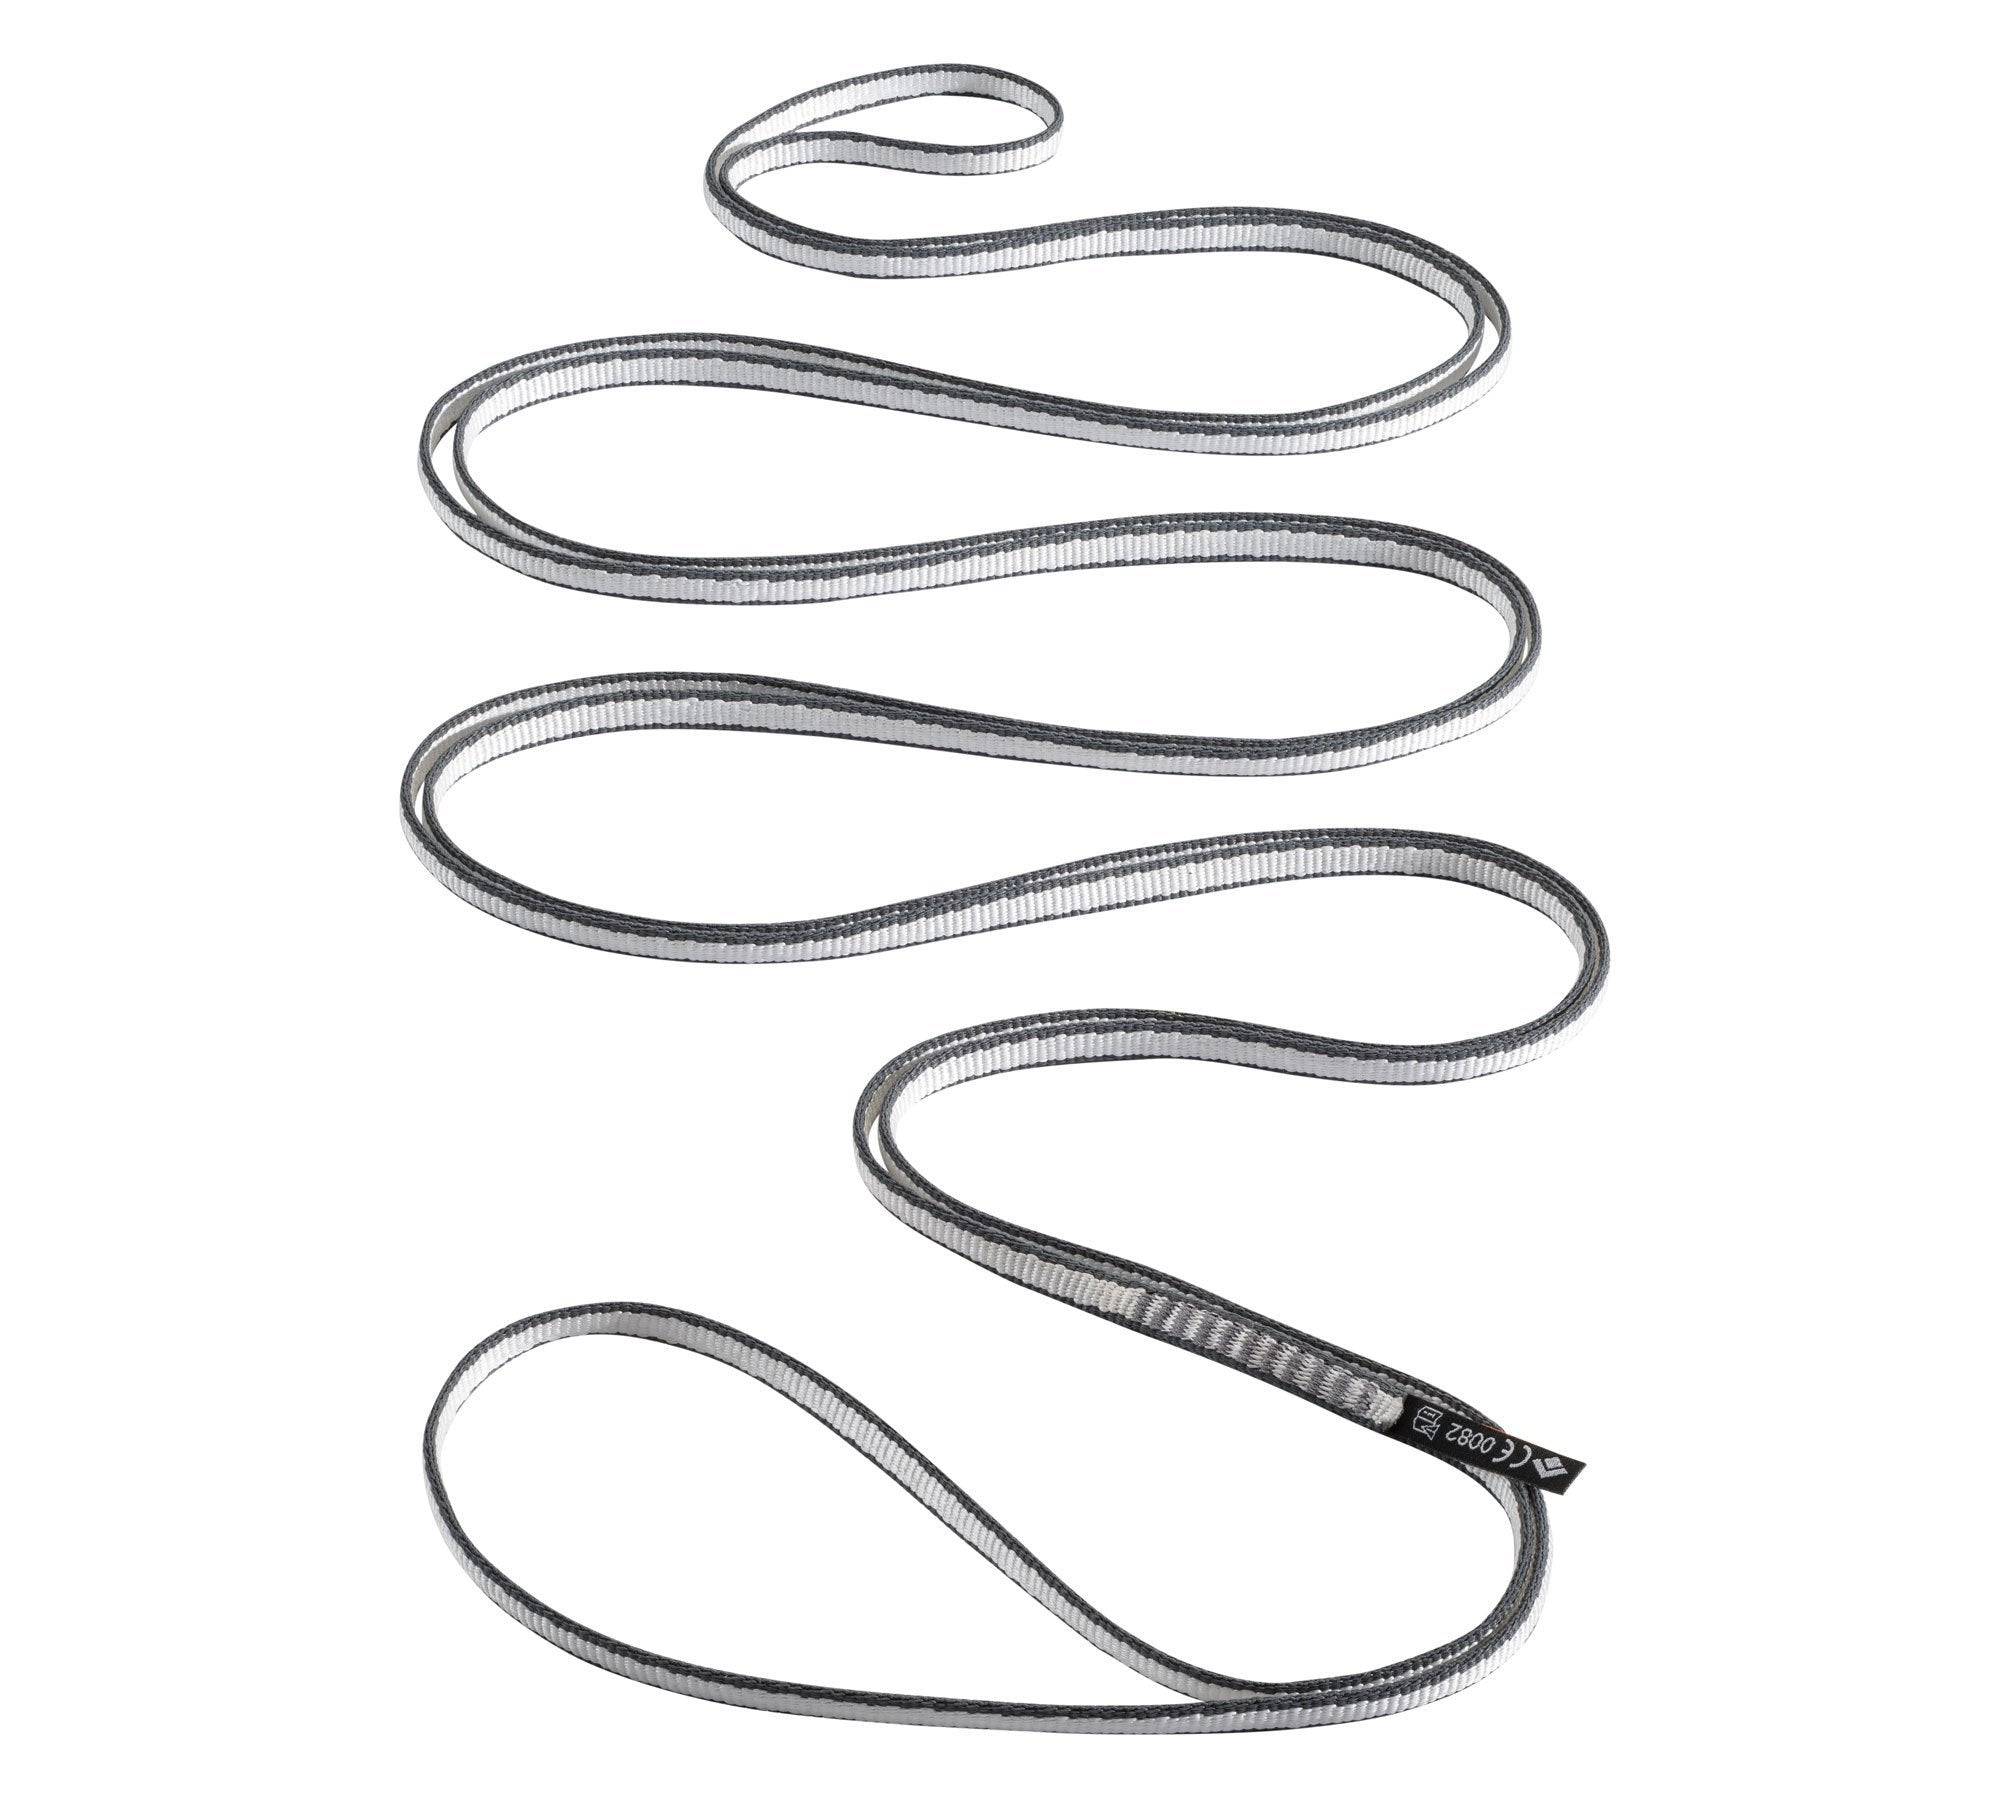 Black Diamond Dynex climbing Sling 10mm x 240cm, in grey colour